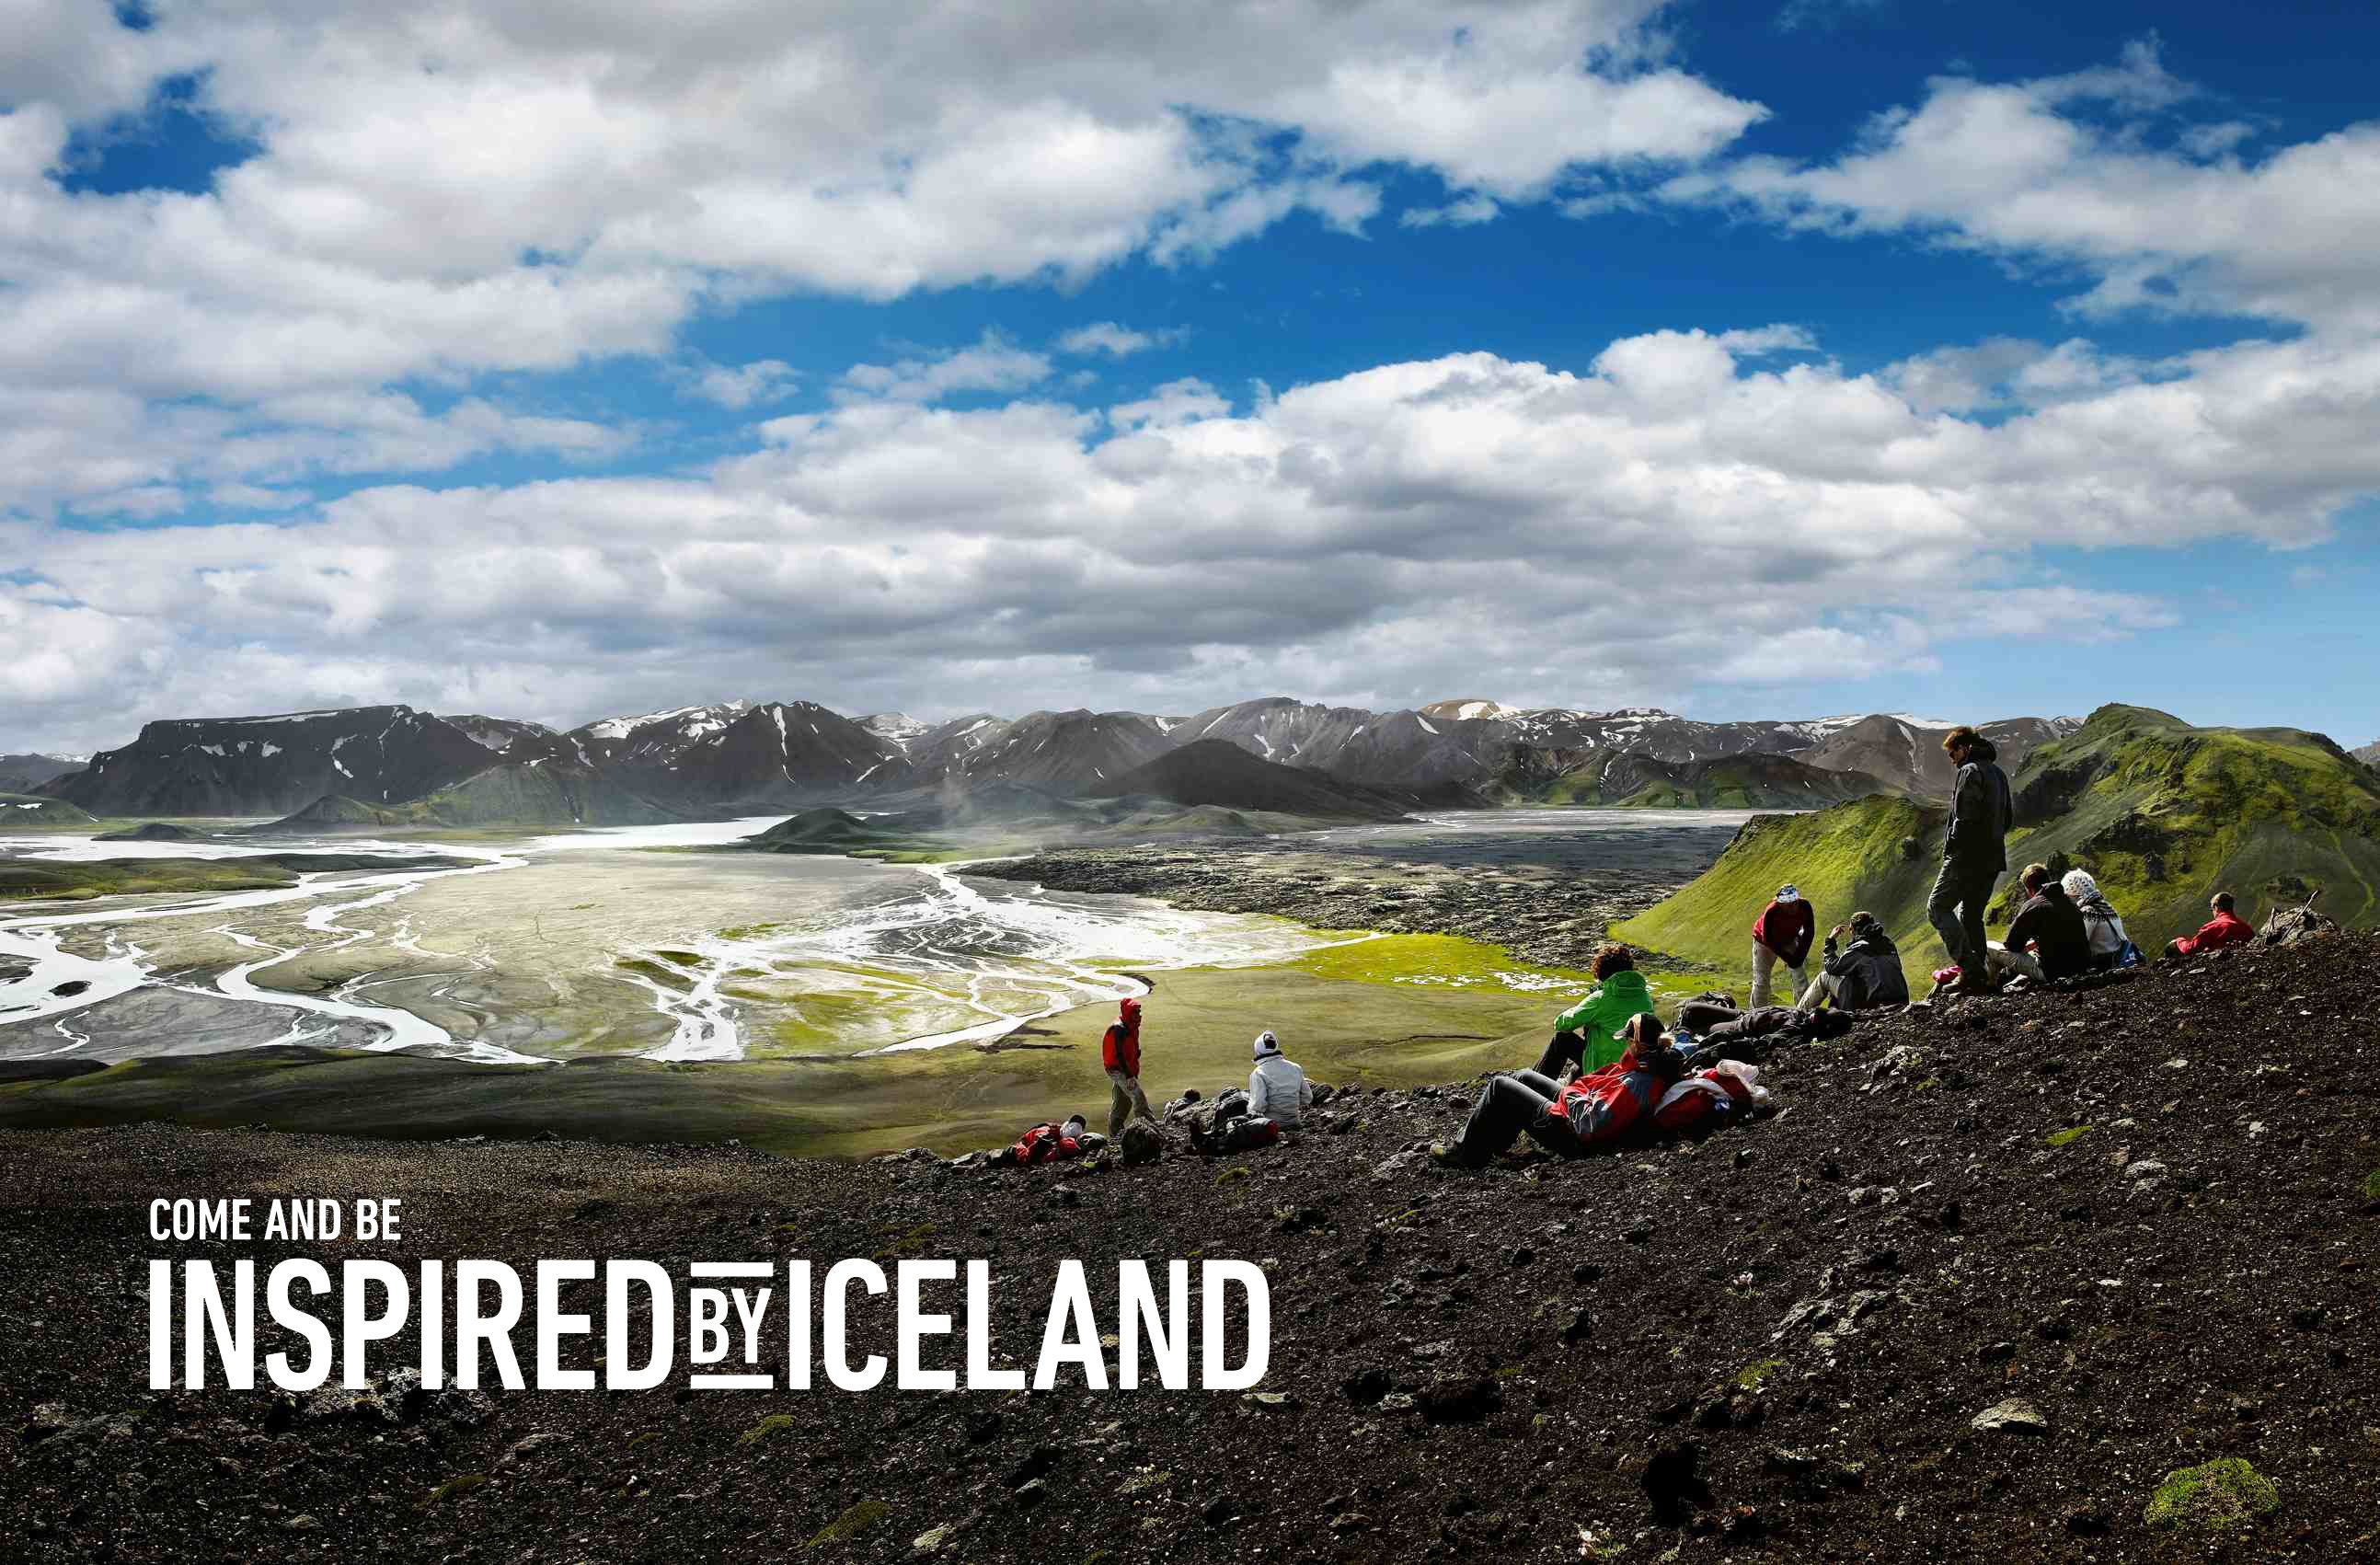 Iceland tourism poster